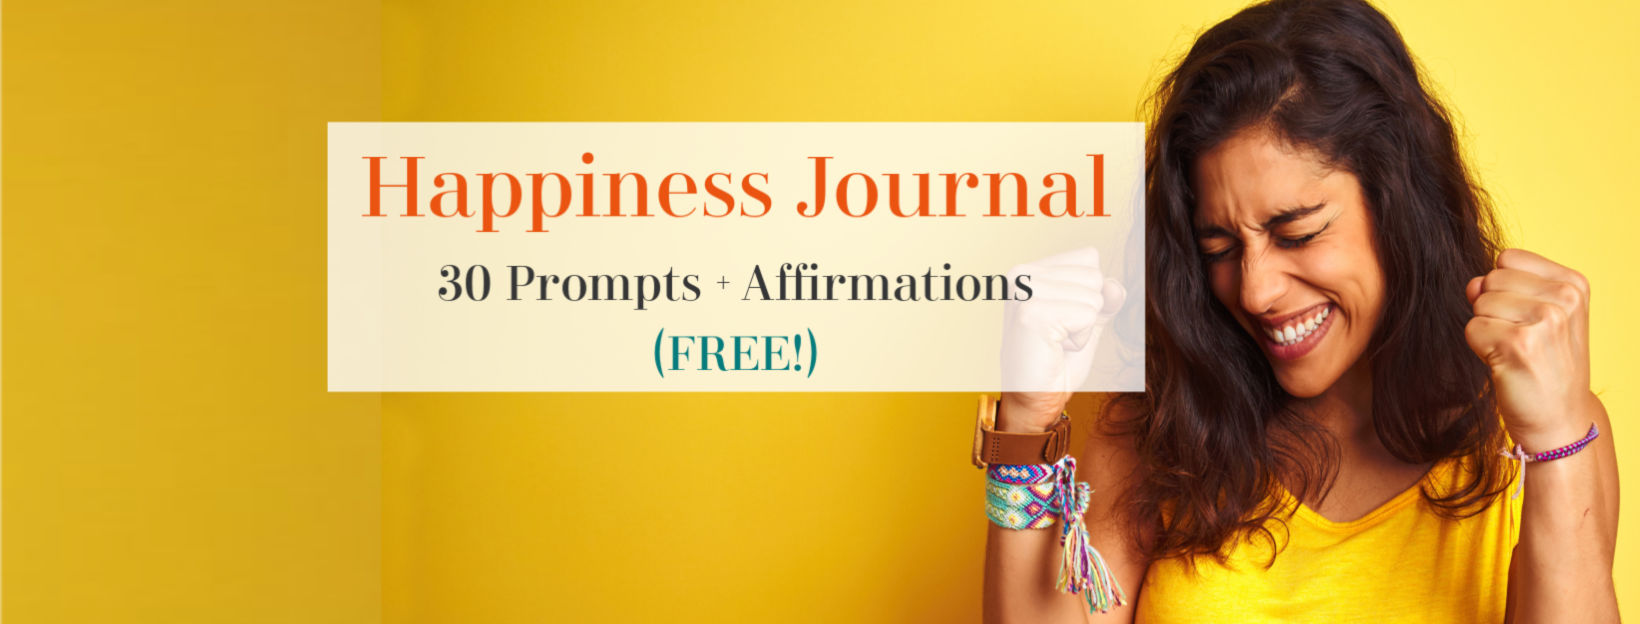 happiness journal and affirmations